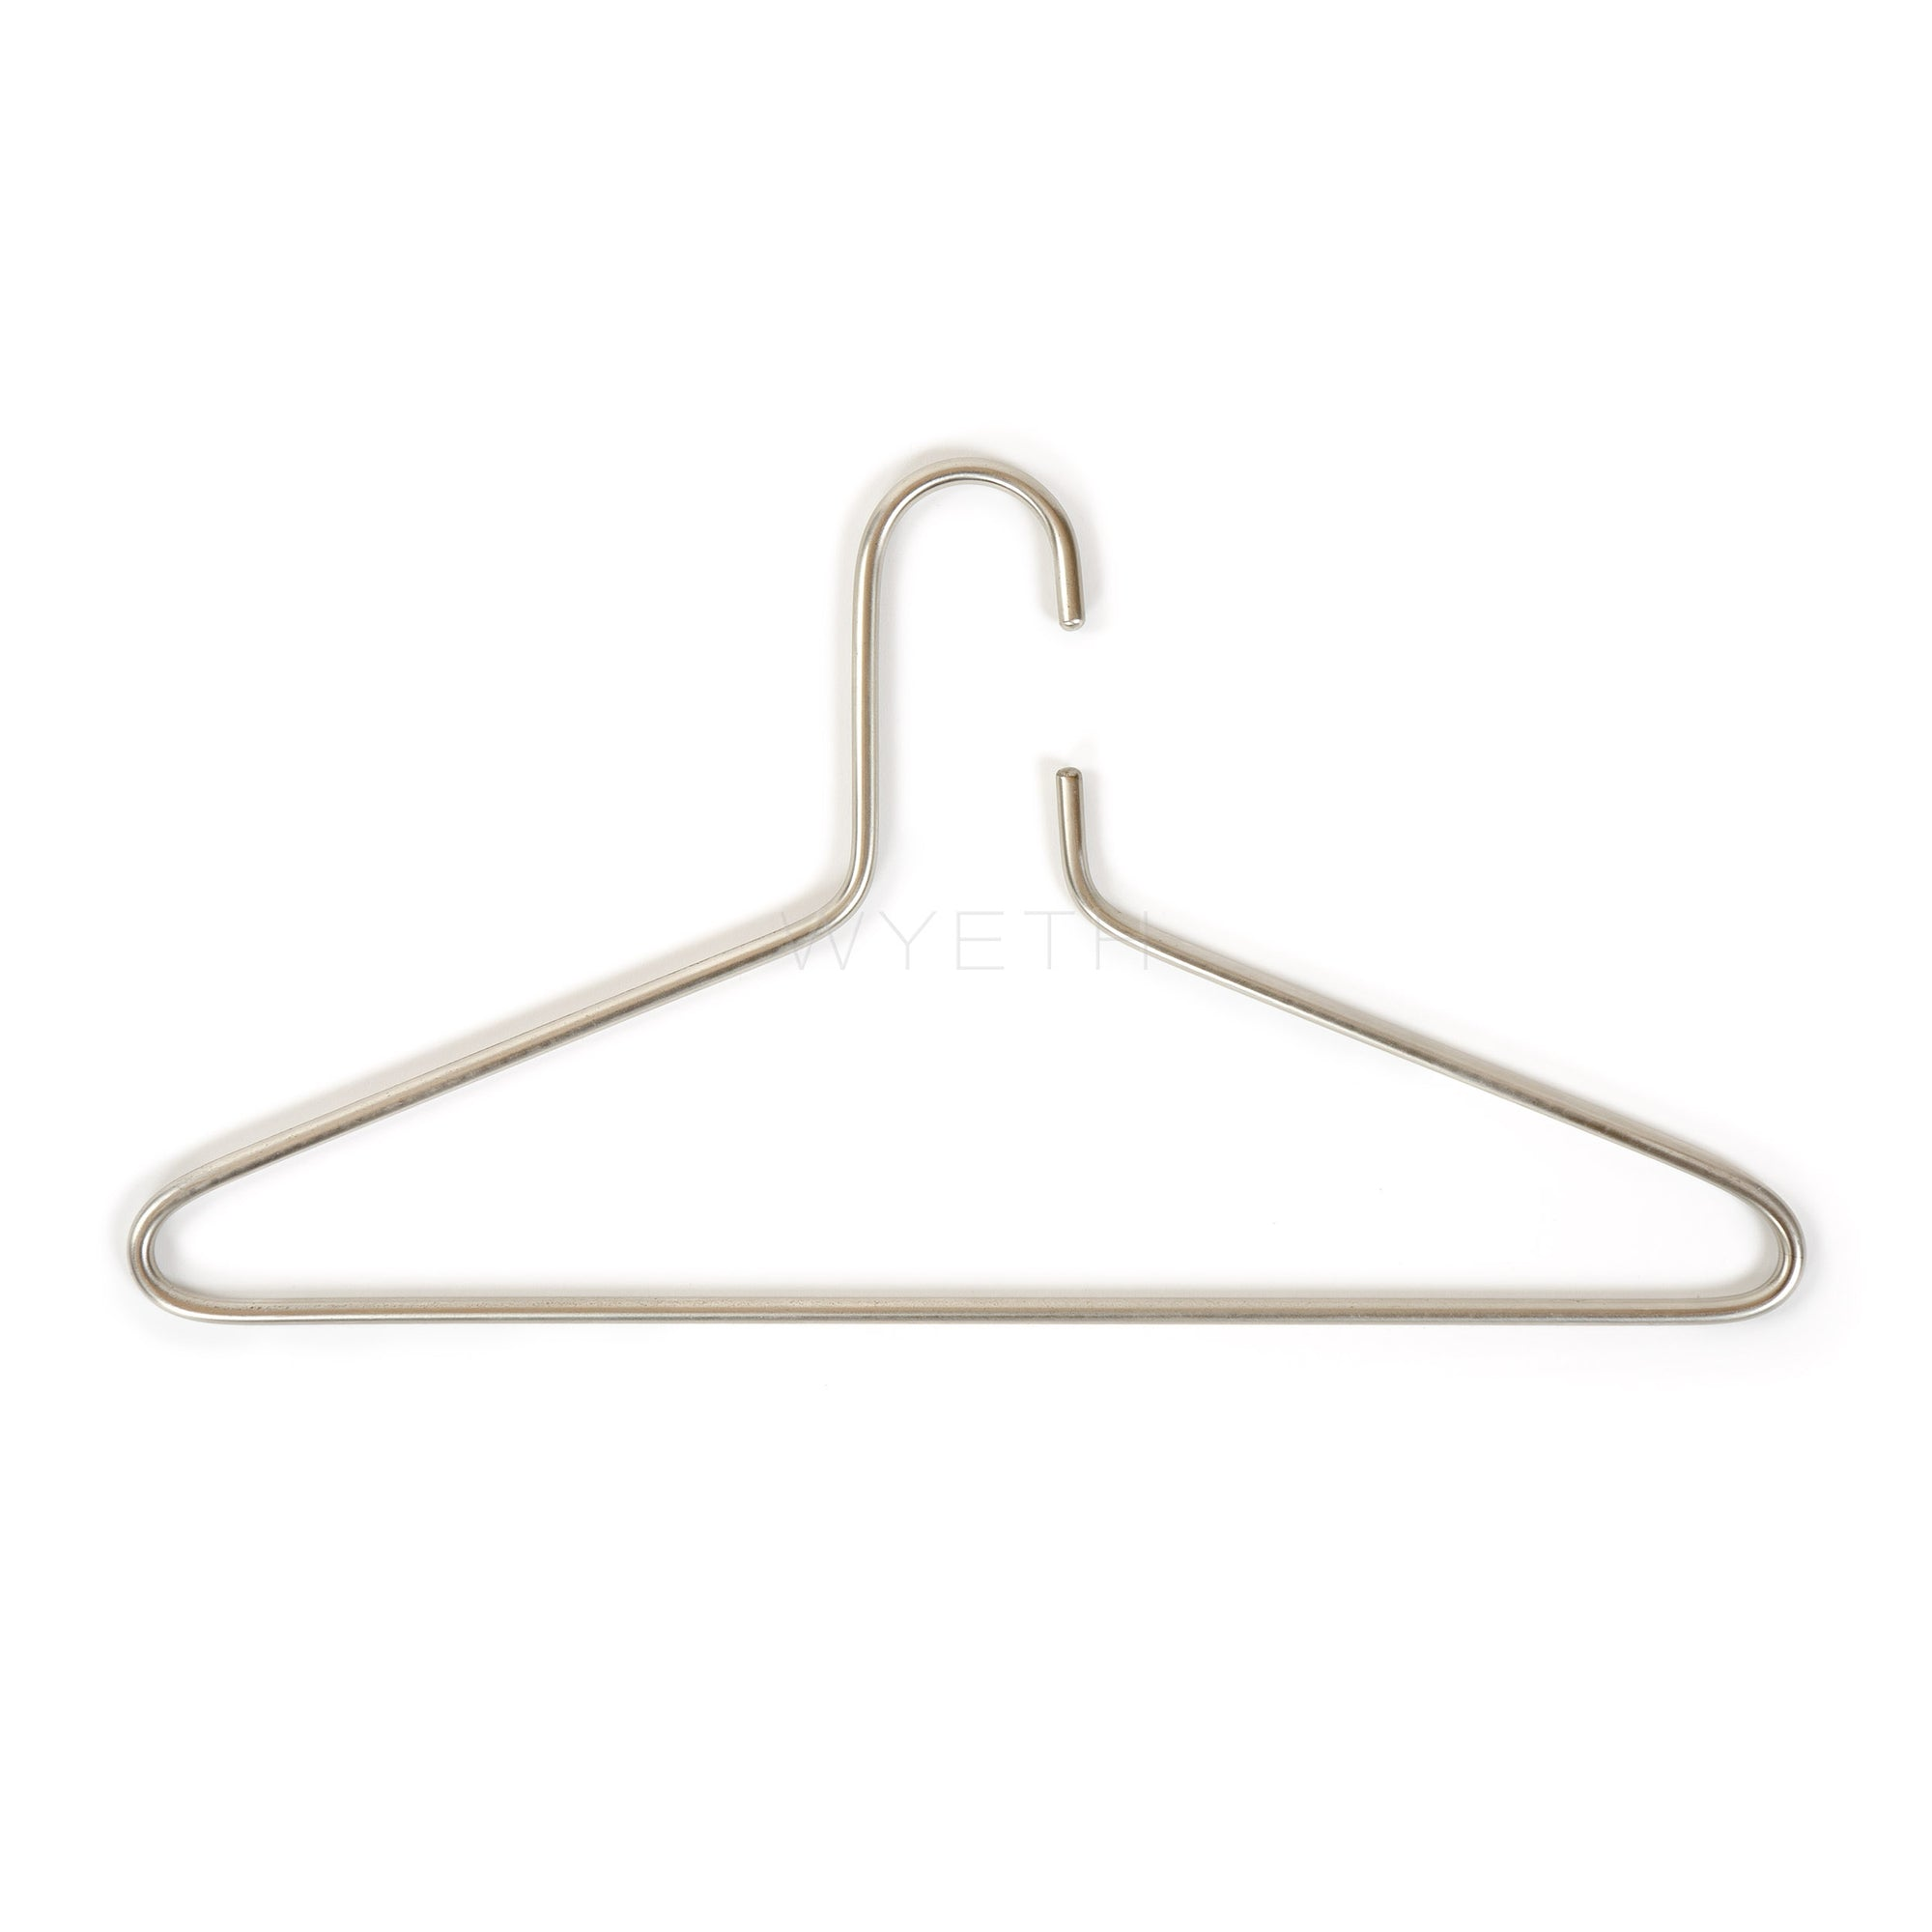 Chrome Plated Clothes Hanger